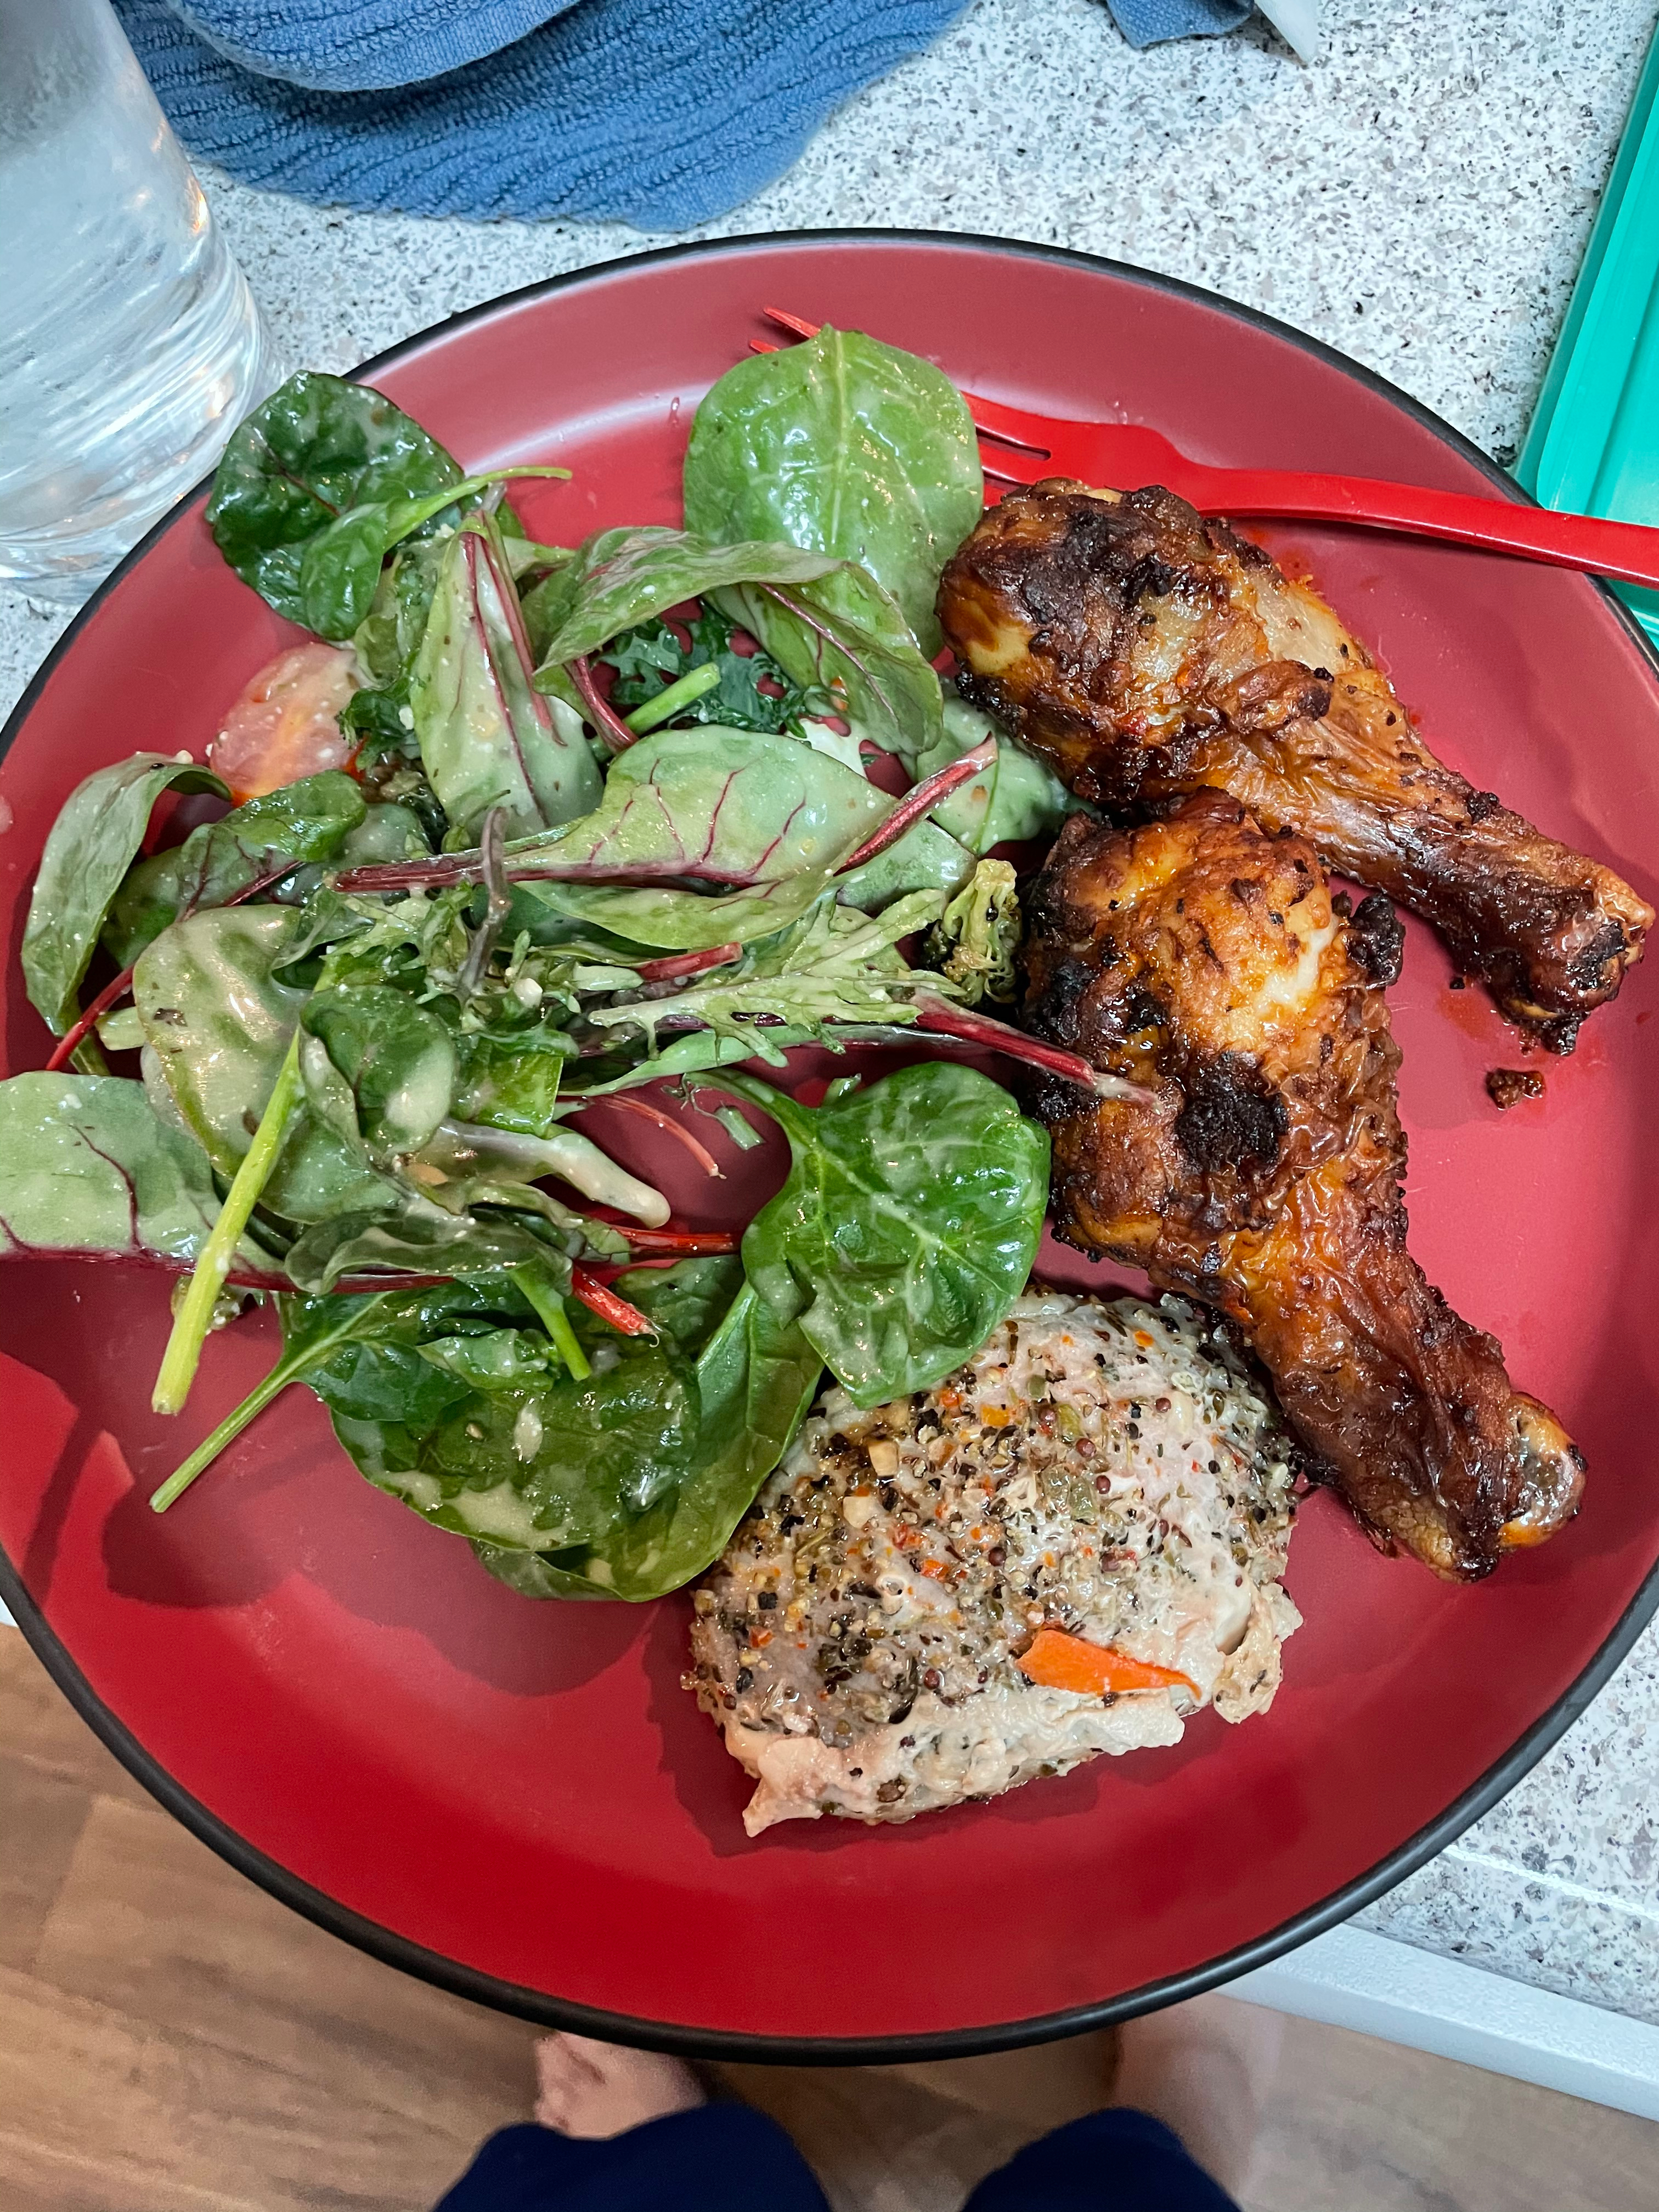 Chicken legs, pork and left over salad.